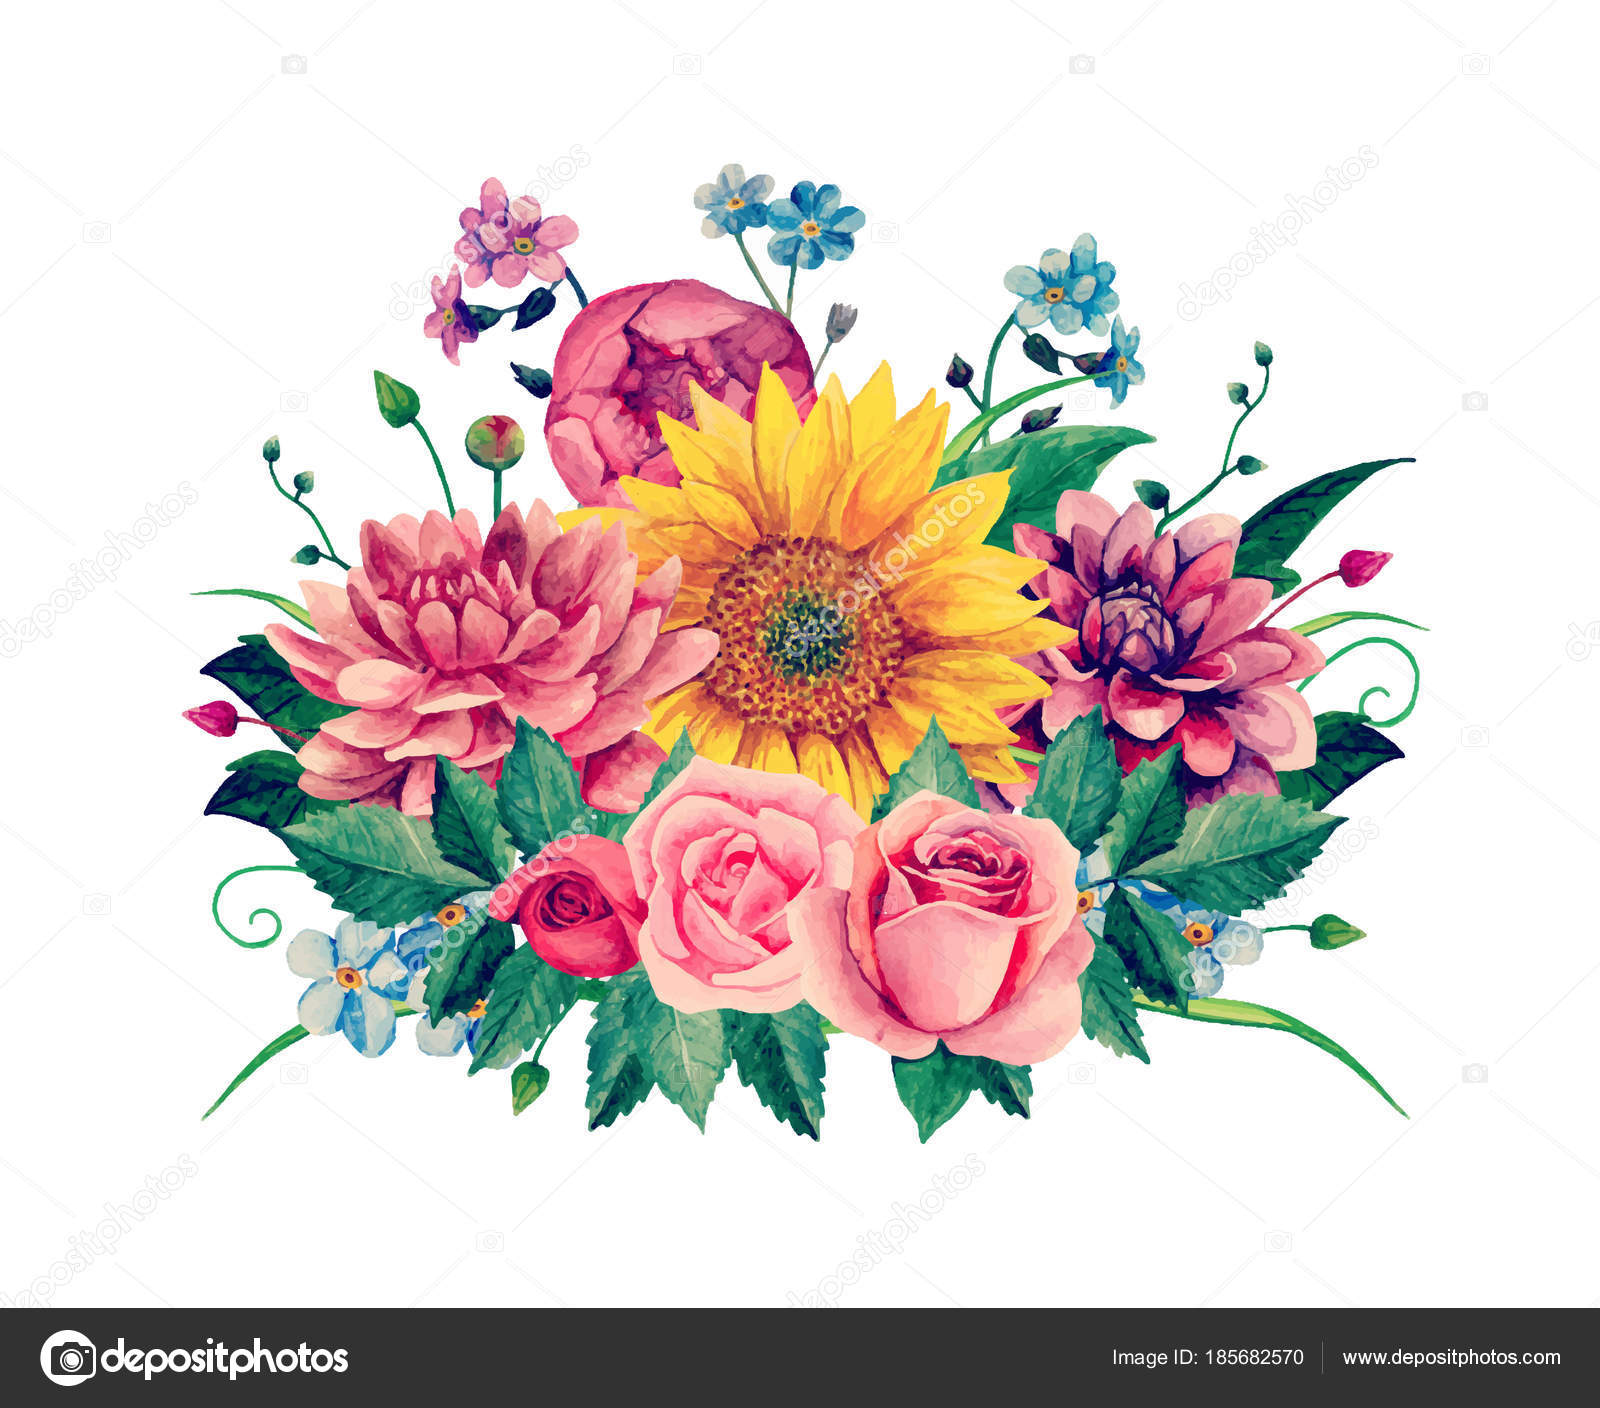 Watercolor Floral Bouquet Clipart Handpainted Flowers Clip Art Stock Vector